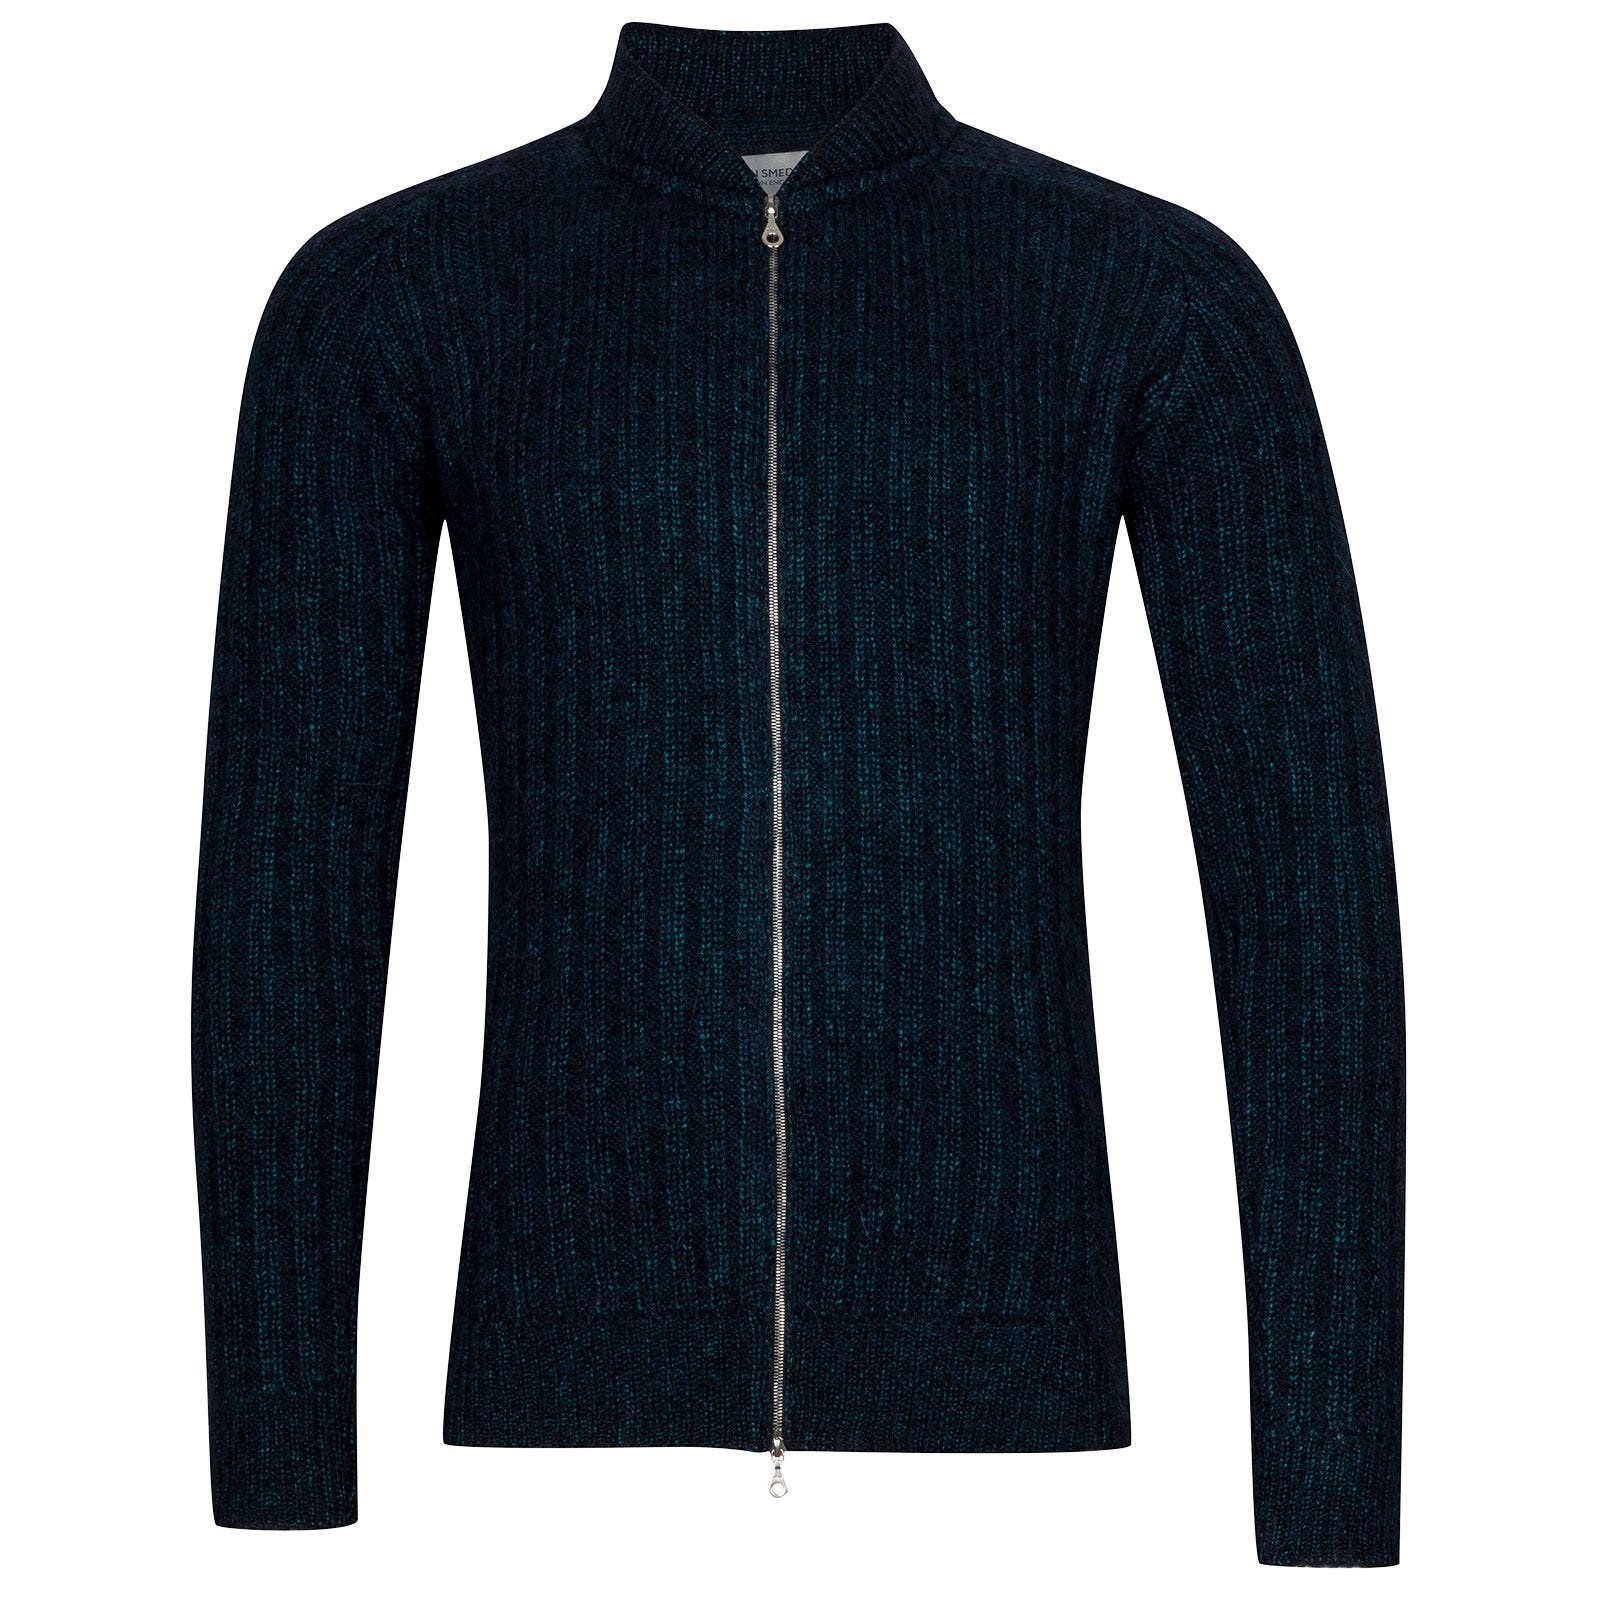 John Smedley Power Viscose Blend Jacket In Boron Green-L